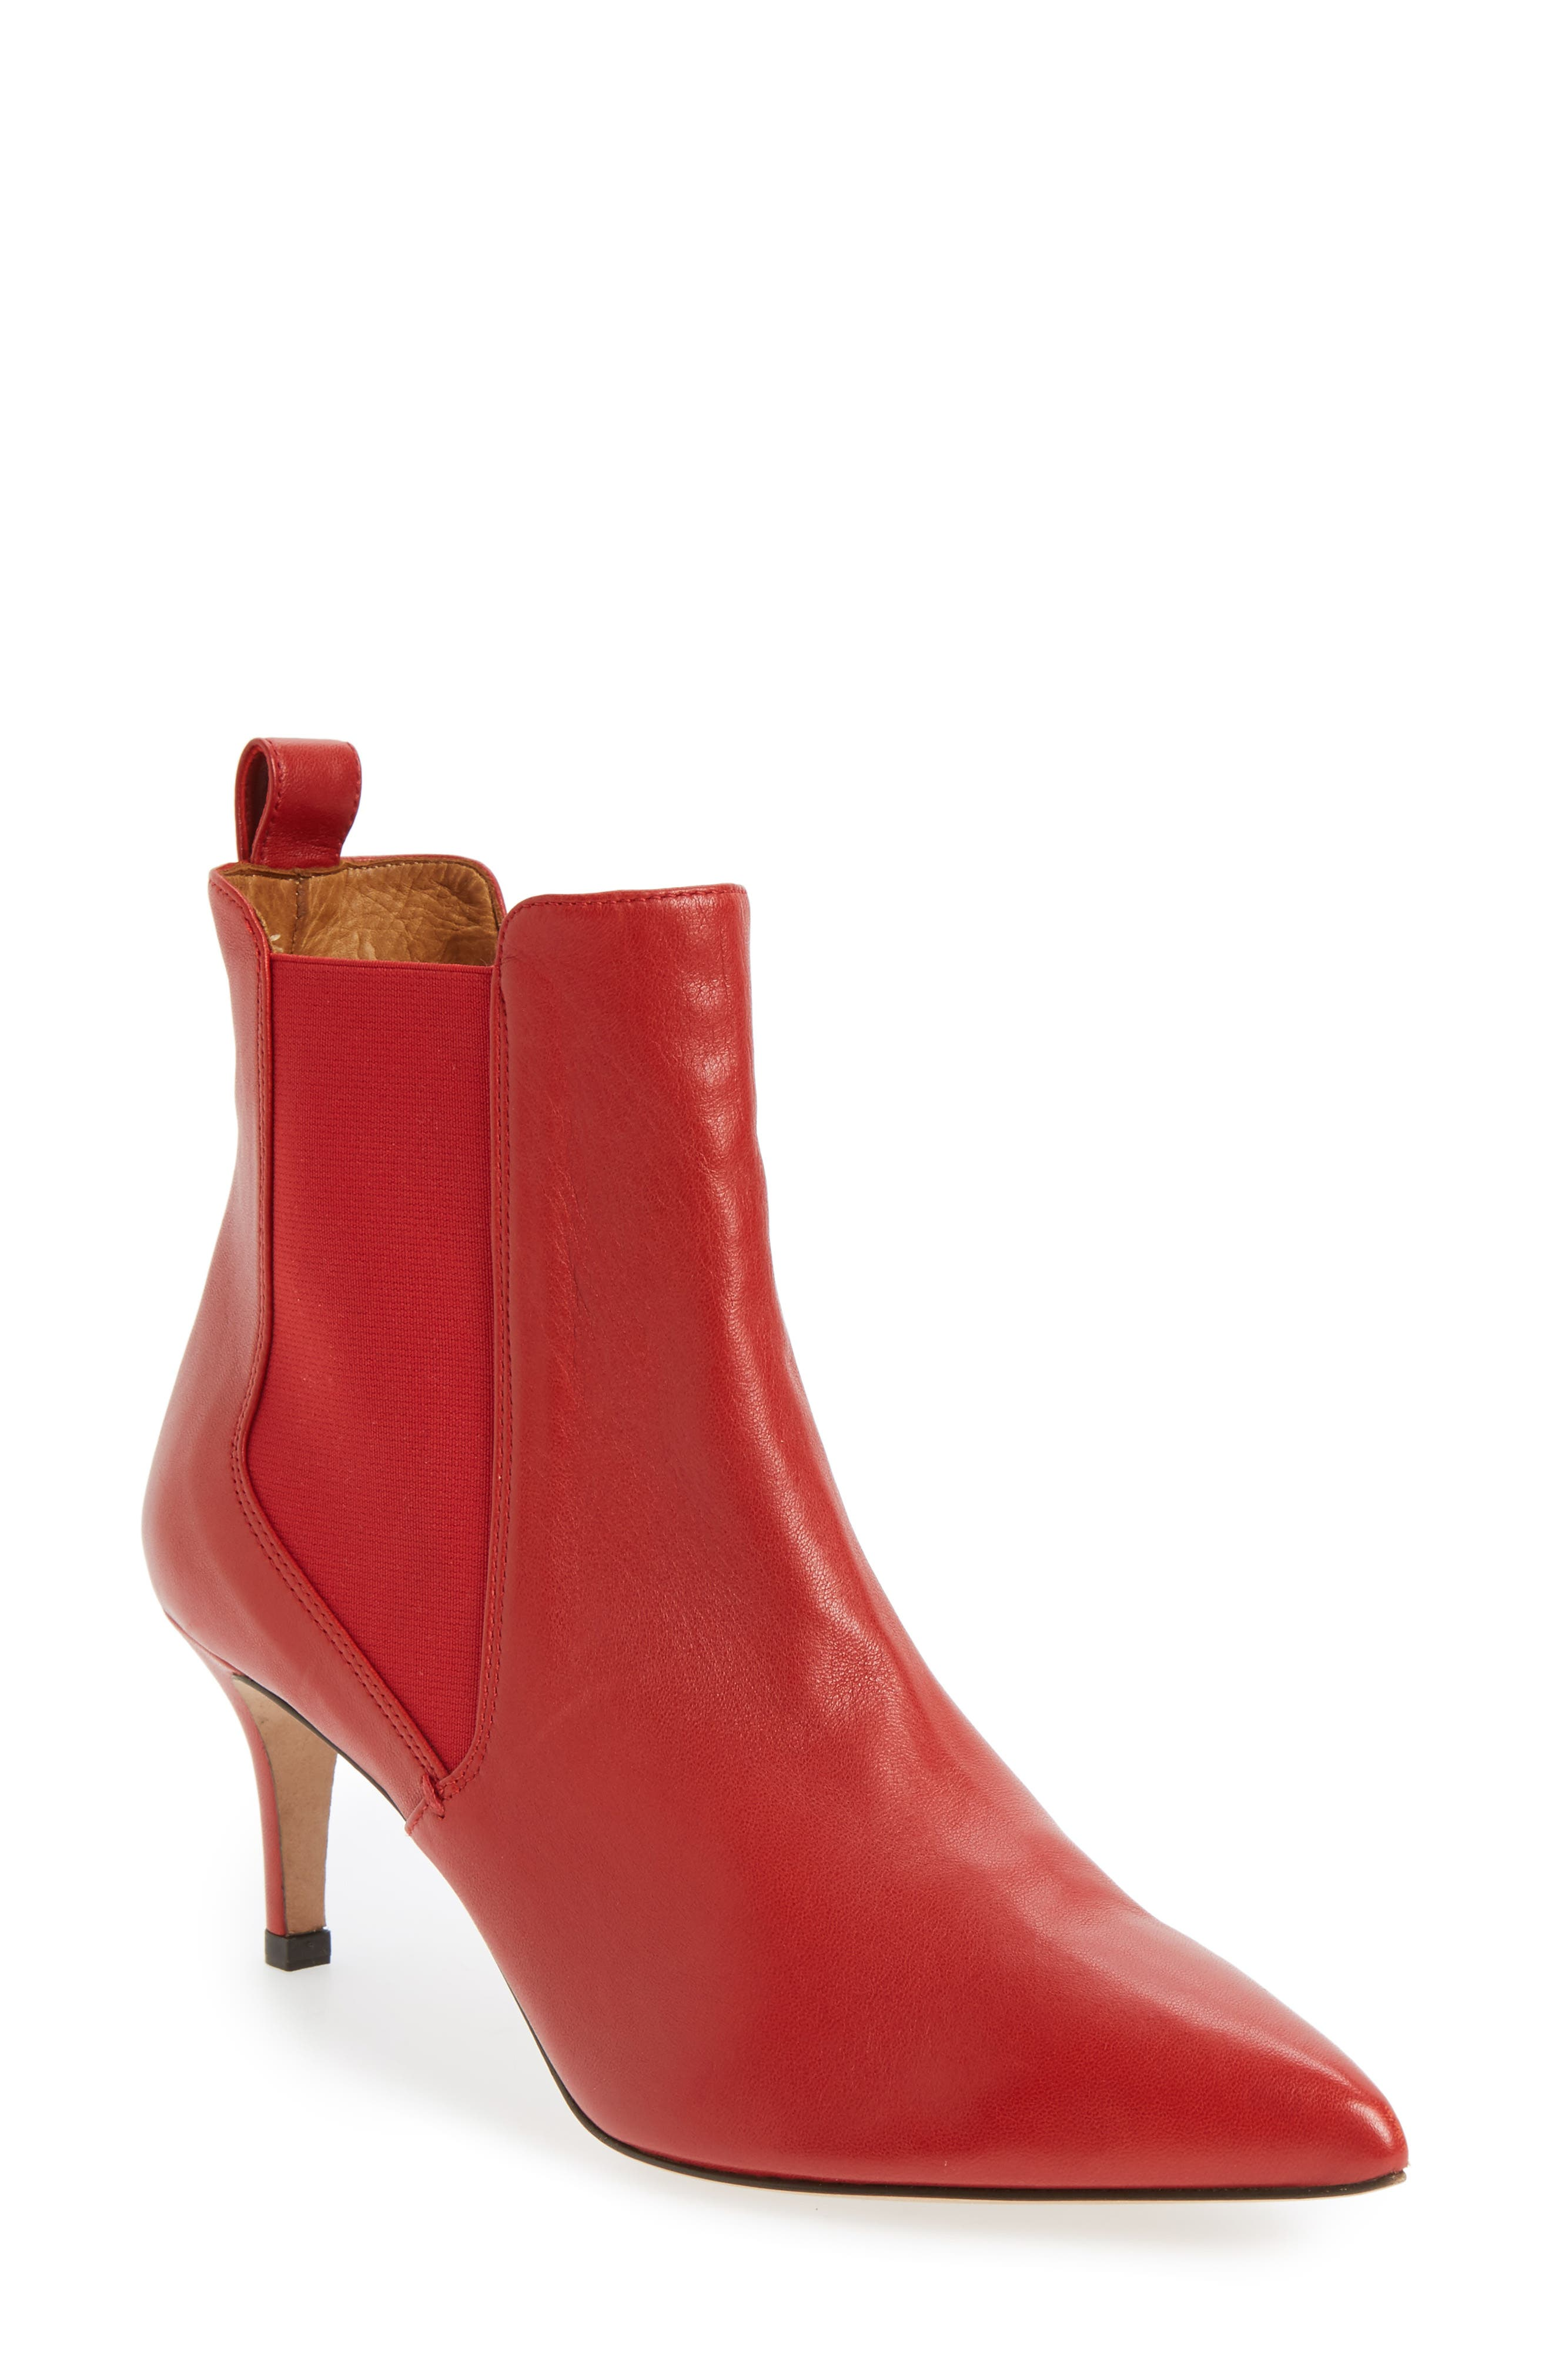 Alternate Image 1 Selected - Veronica Beard Parker Pointy Toe Chelsea Bootie (Women)